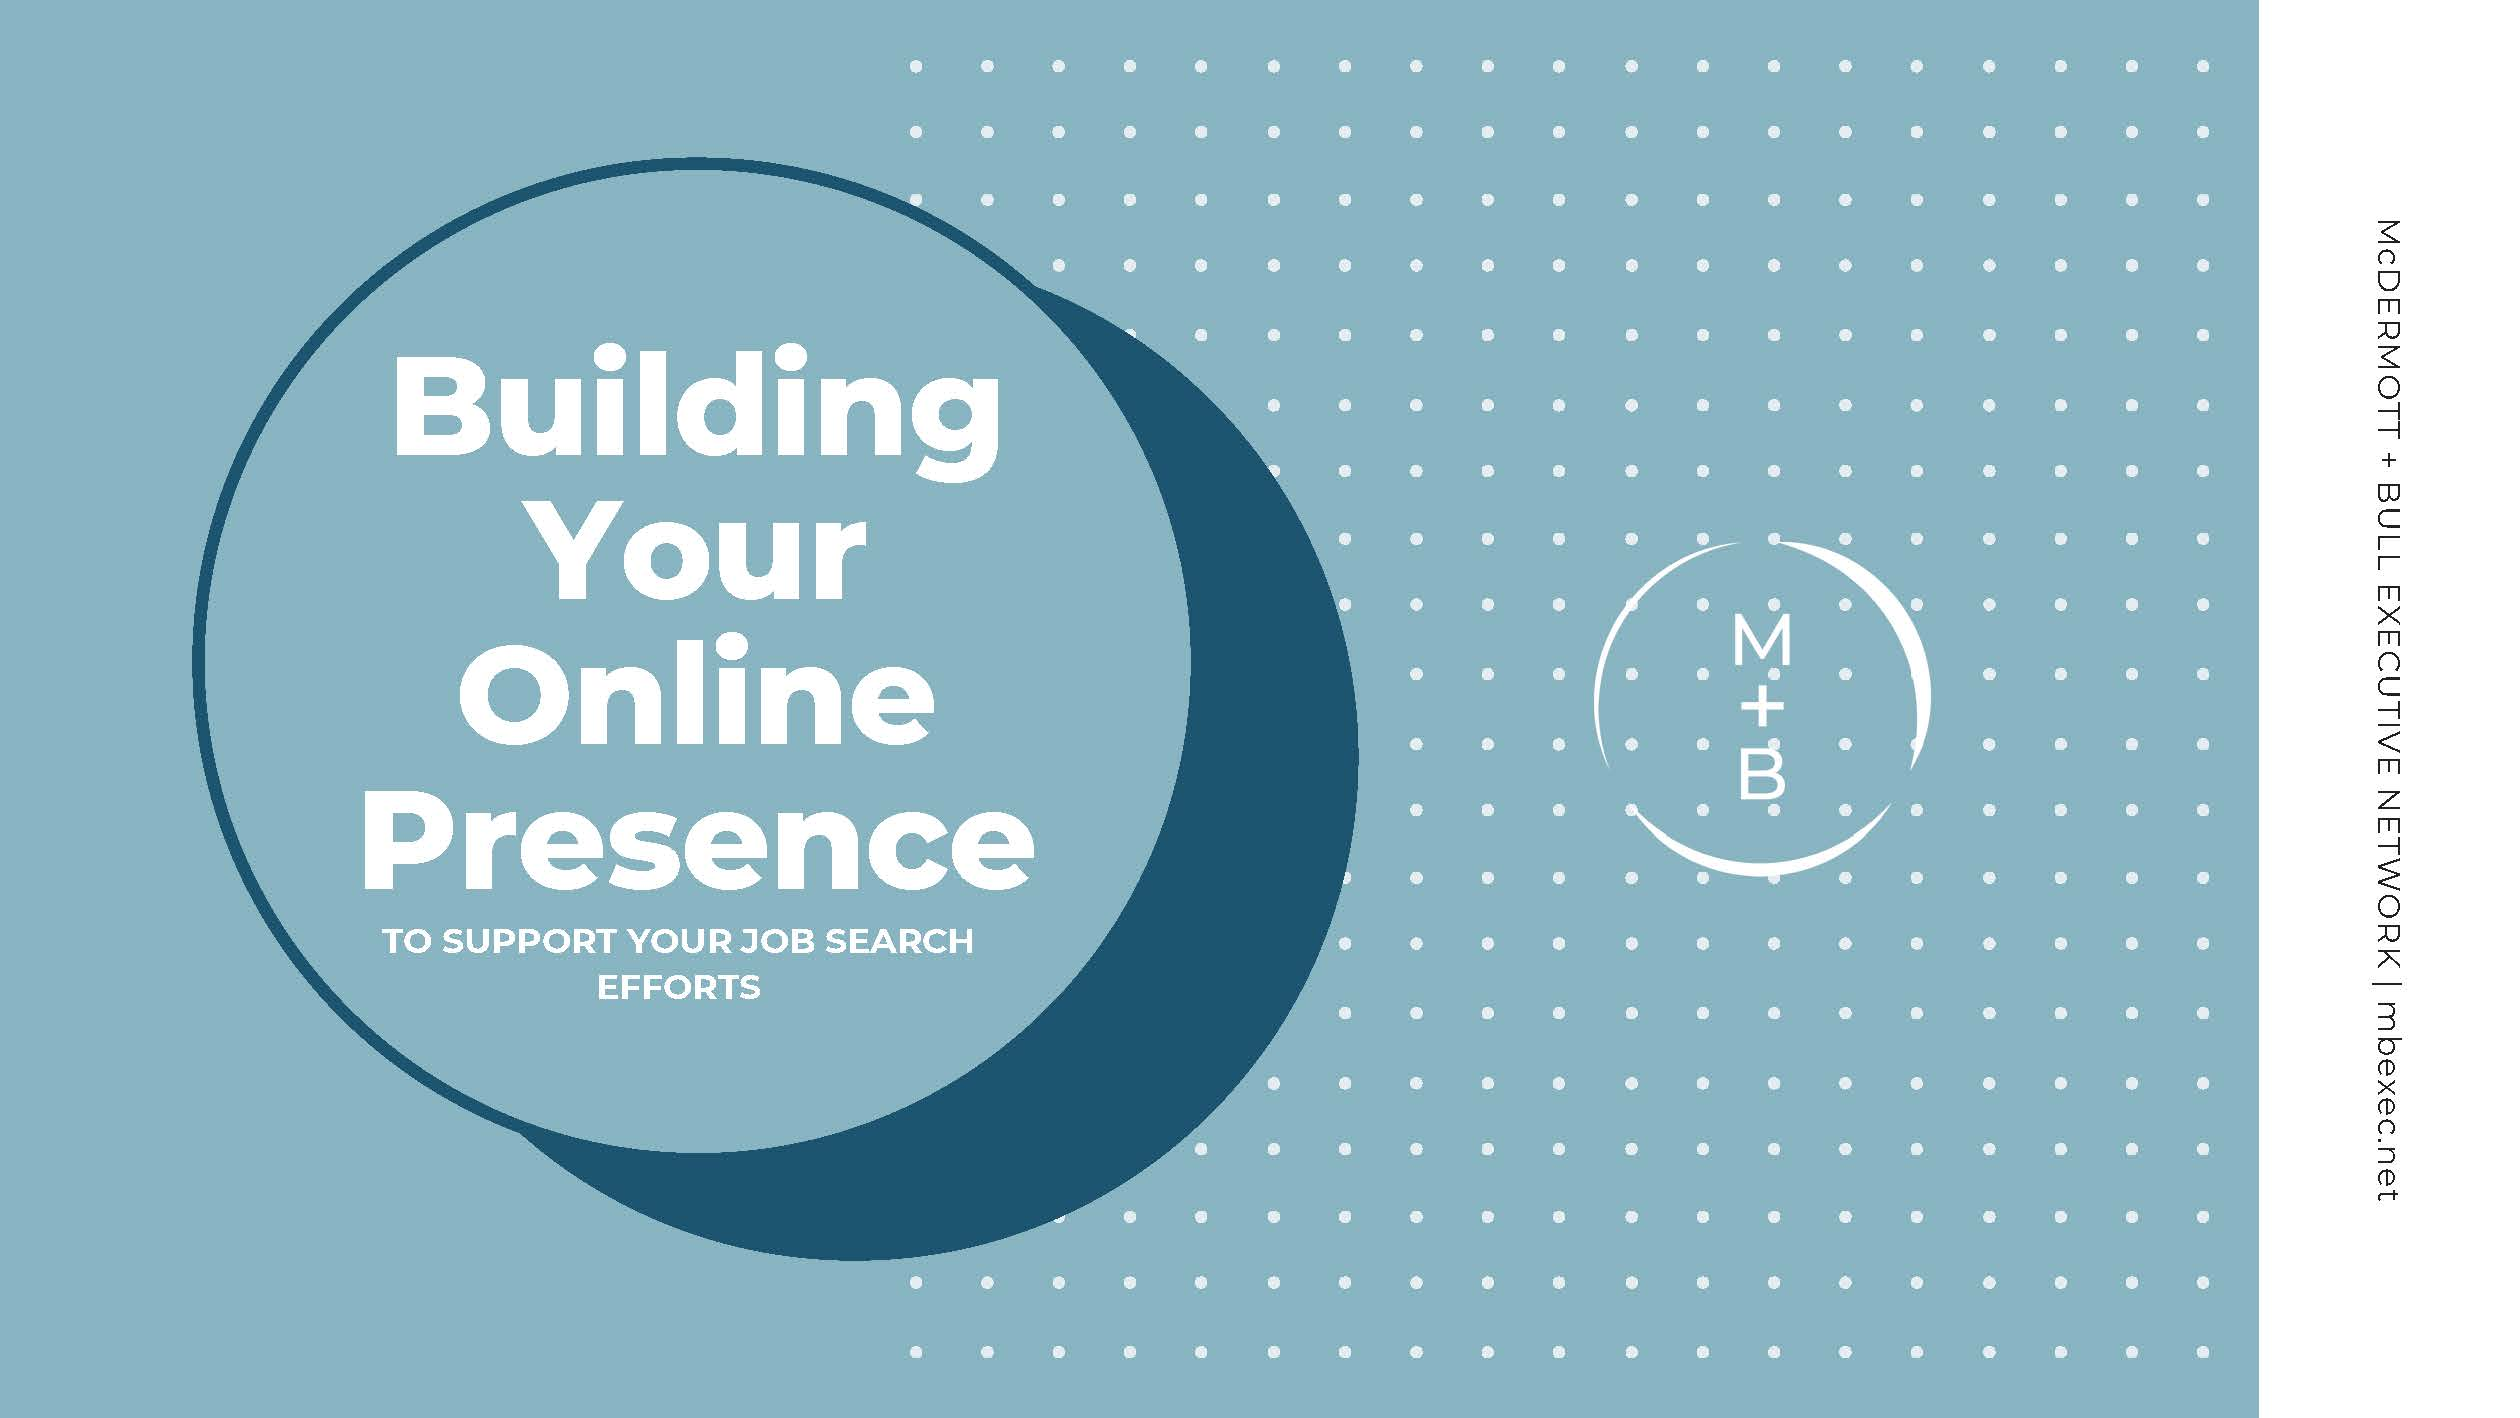 Building Your Online Presence to Support Your Job Search Efforts